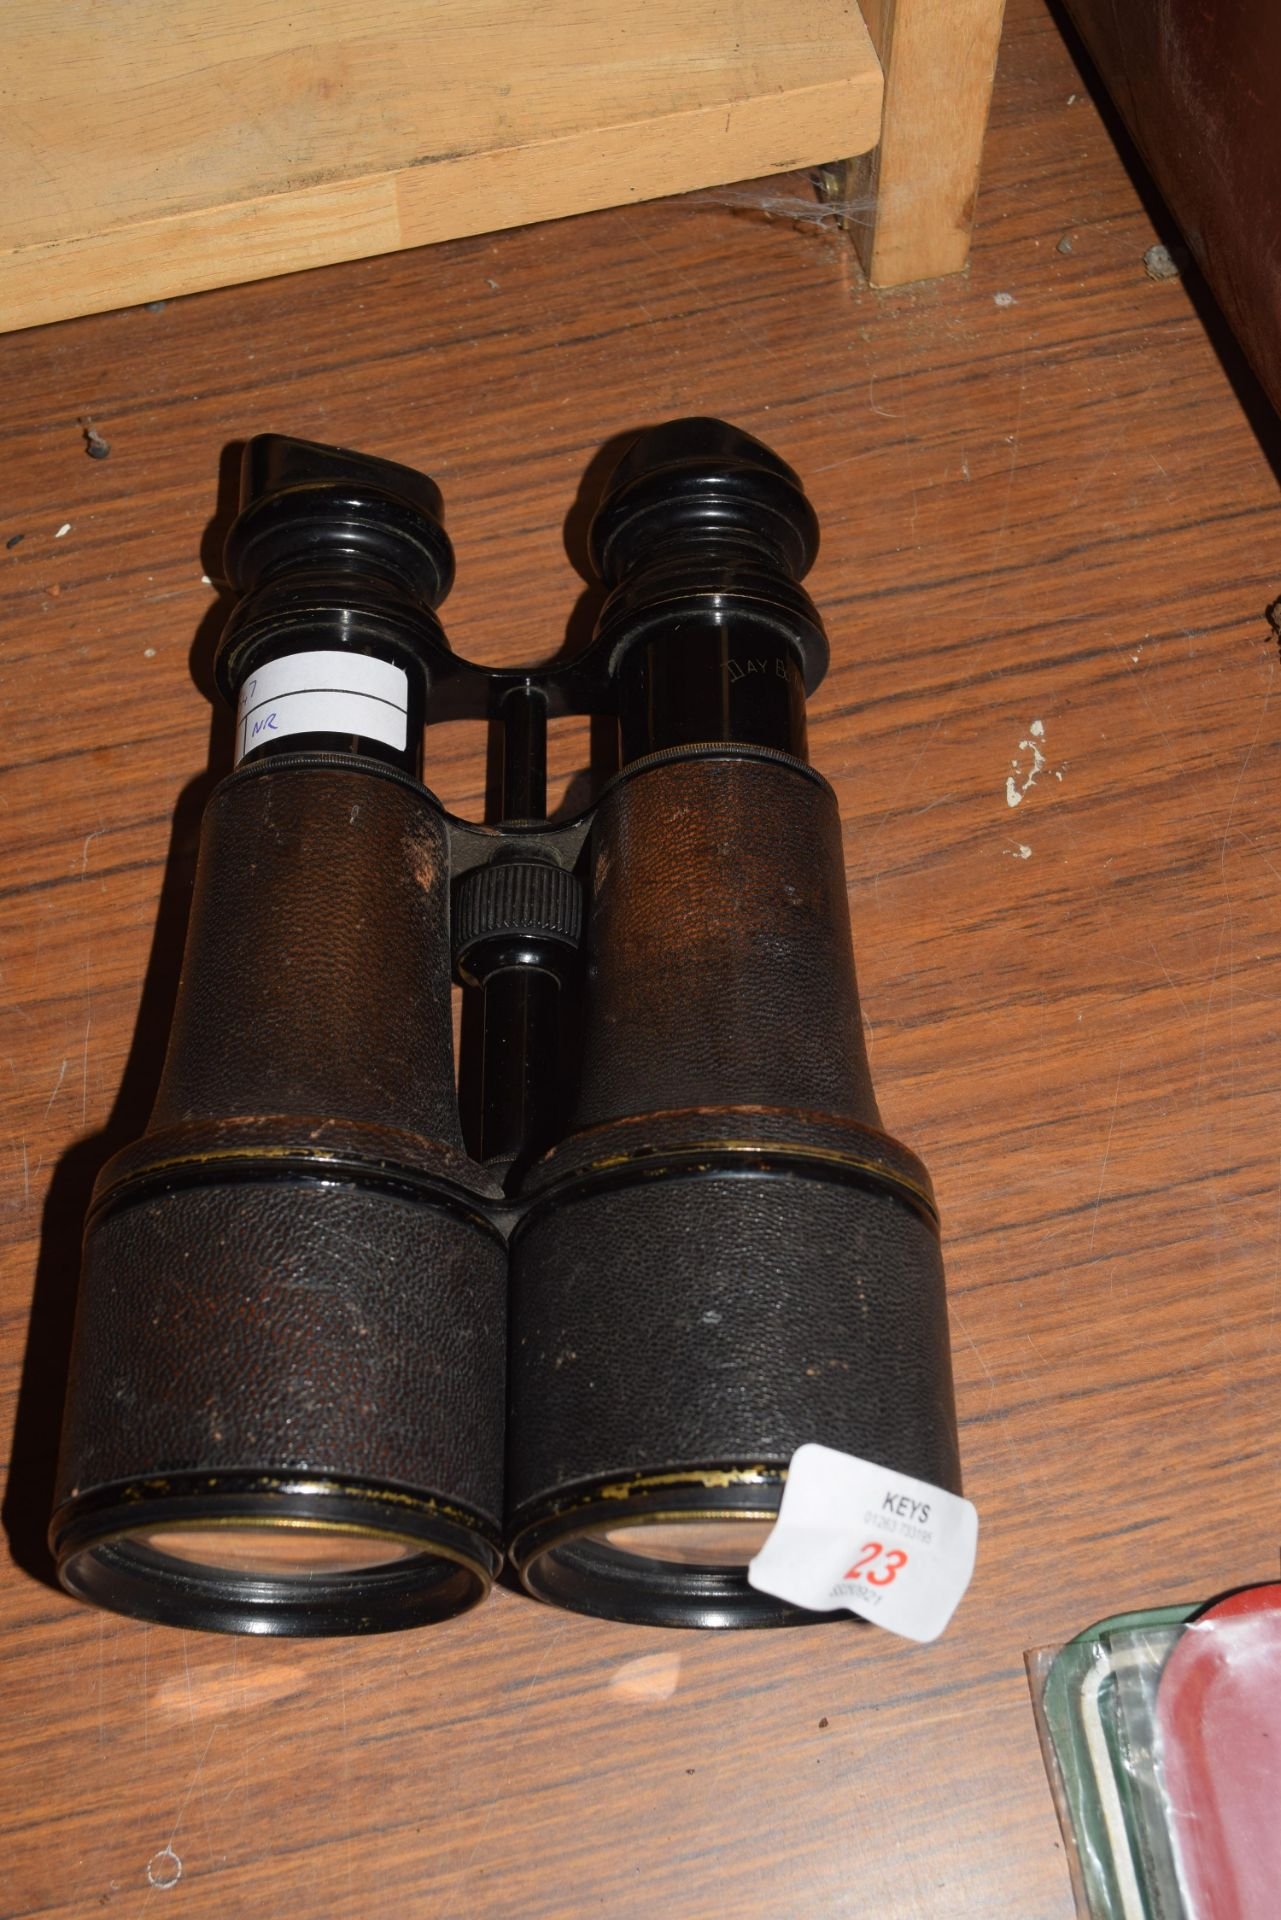 Antique day and night binoculars, marked Fournsseur dela Marine, 20cm high and a further pair of